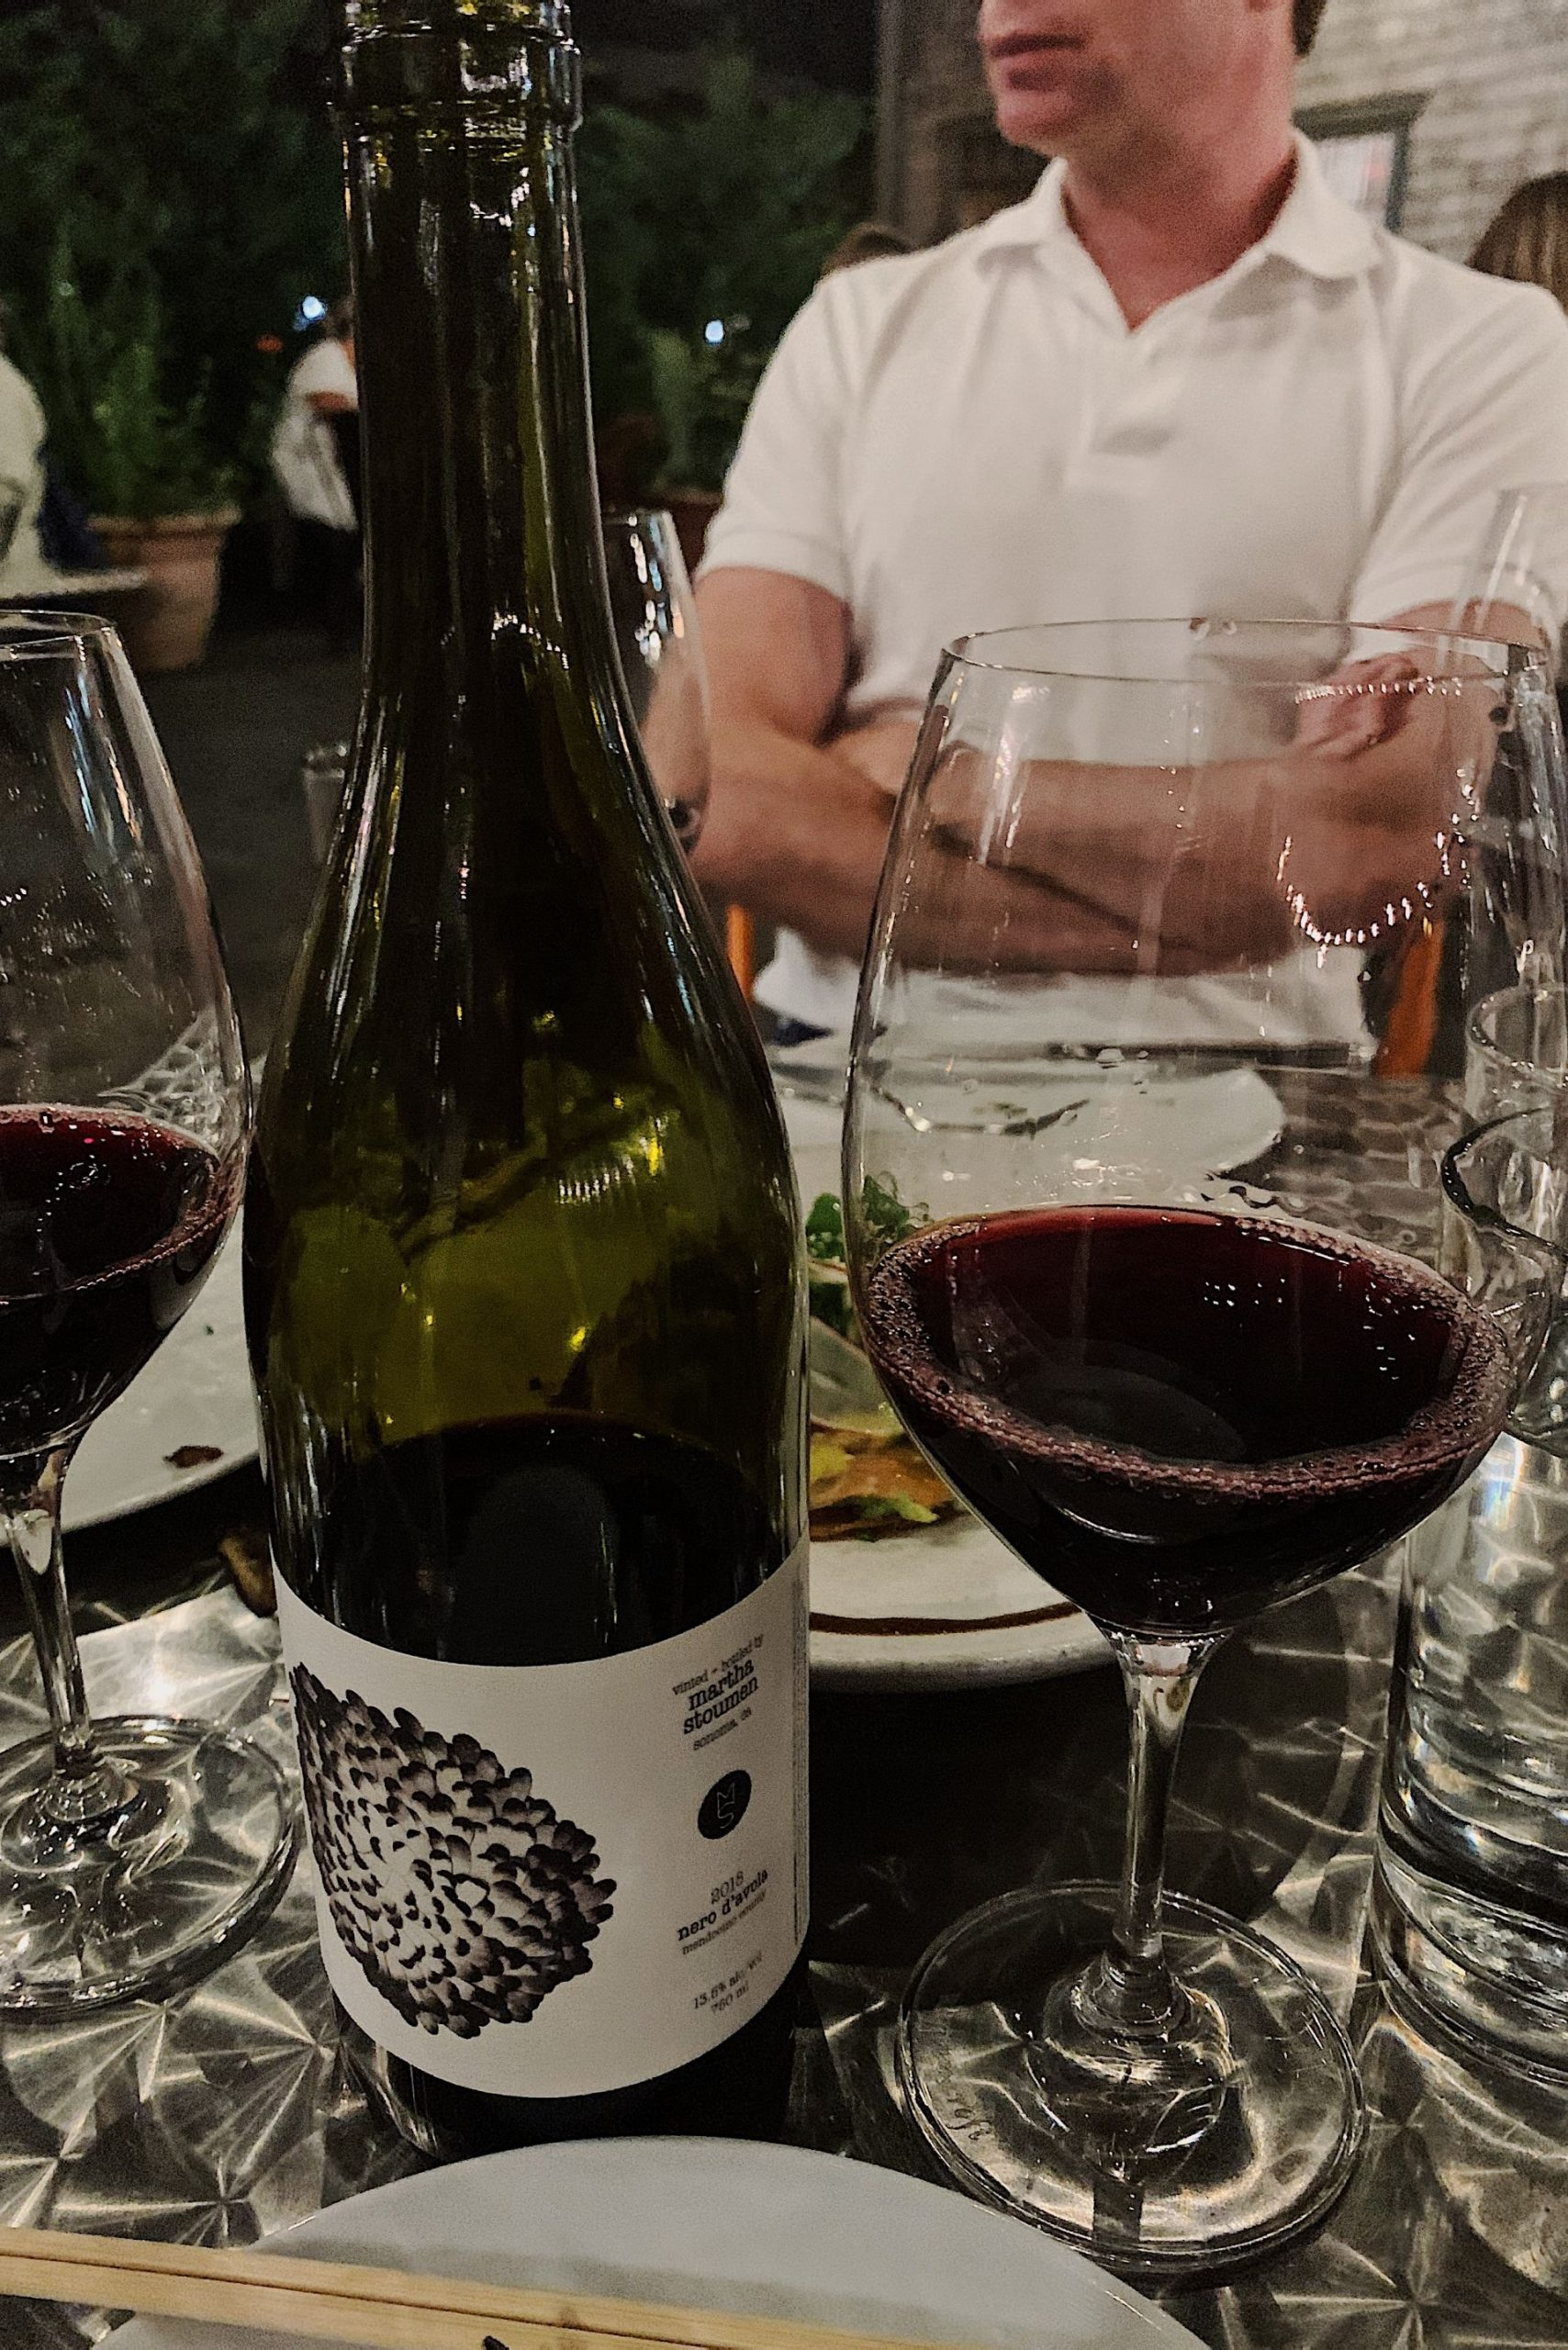 Martha Stoumen Nero d'Avola | Food blogger Meaghan Murray shares a post on her favorite wine during Summer 2020 on her blog The Stopover